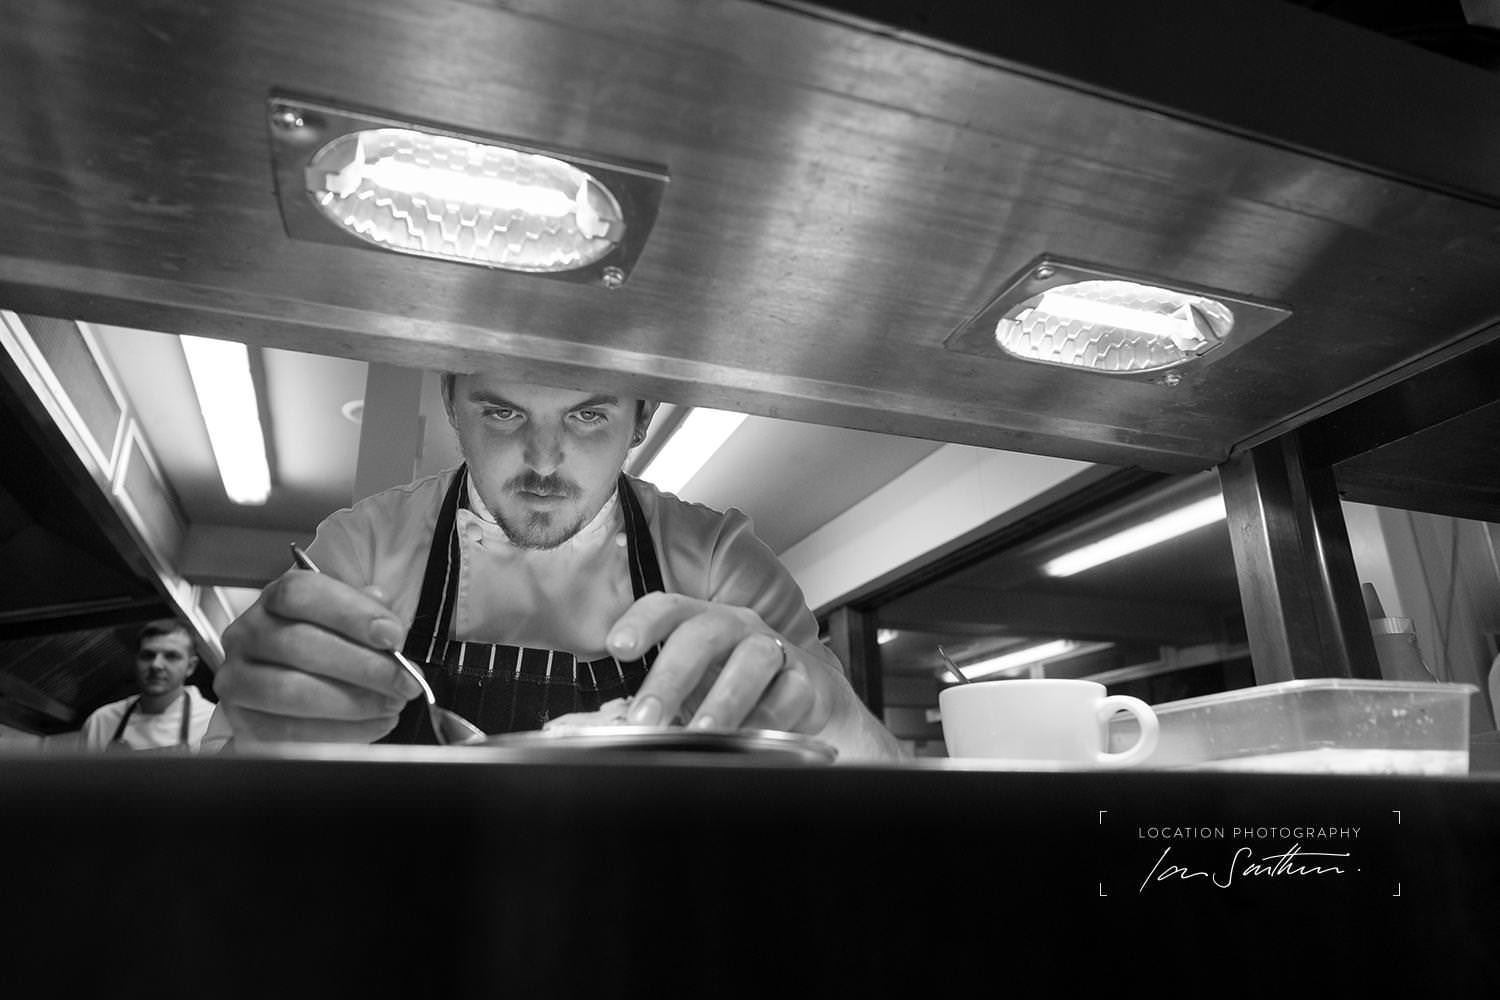 Chef at work, location photography